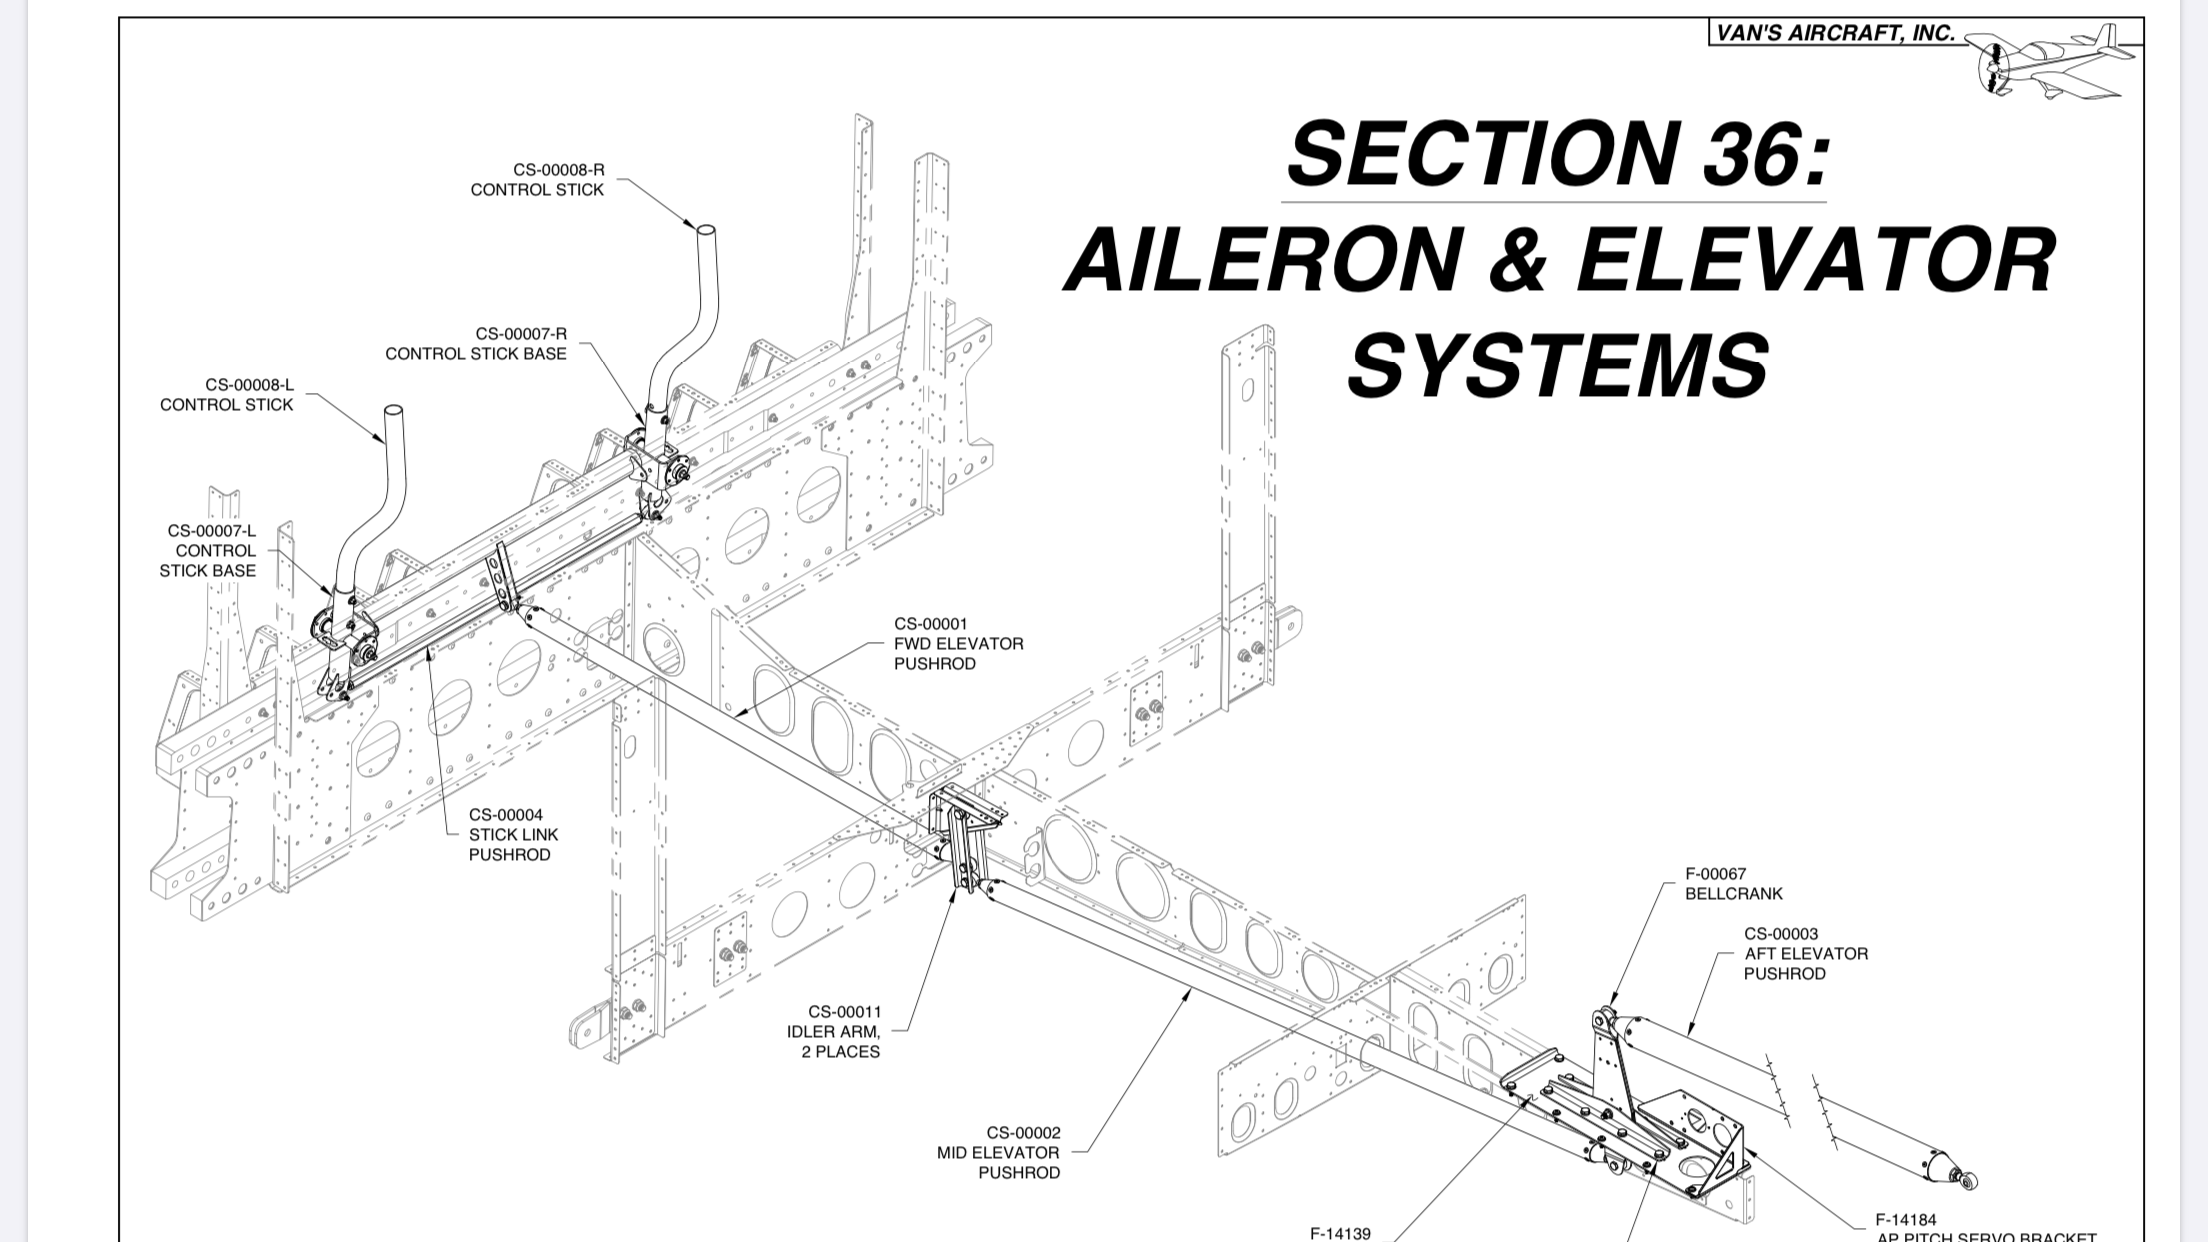 36-Aileron & Elevator Systems